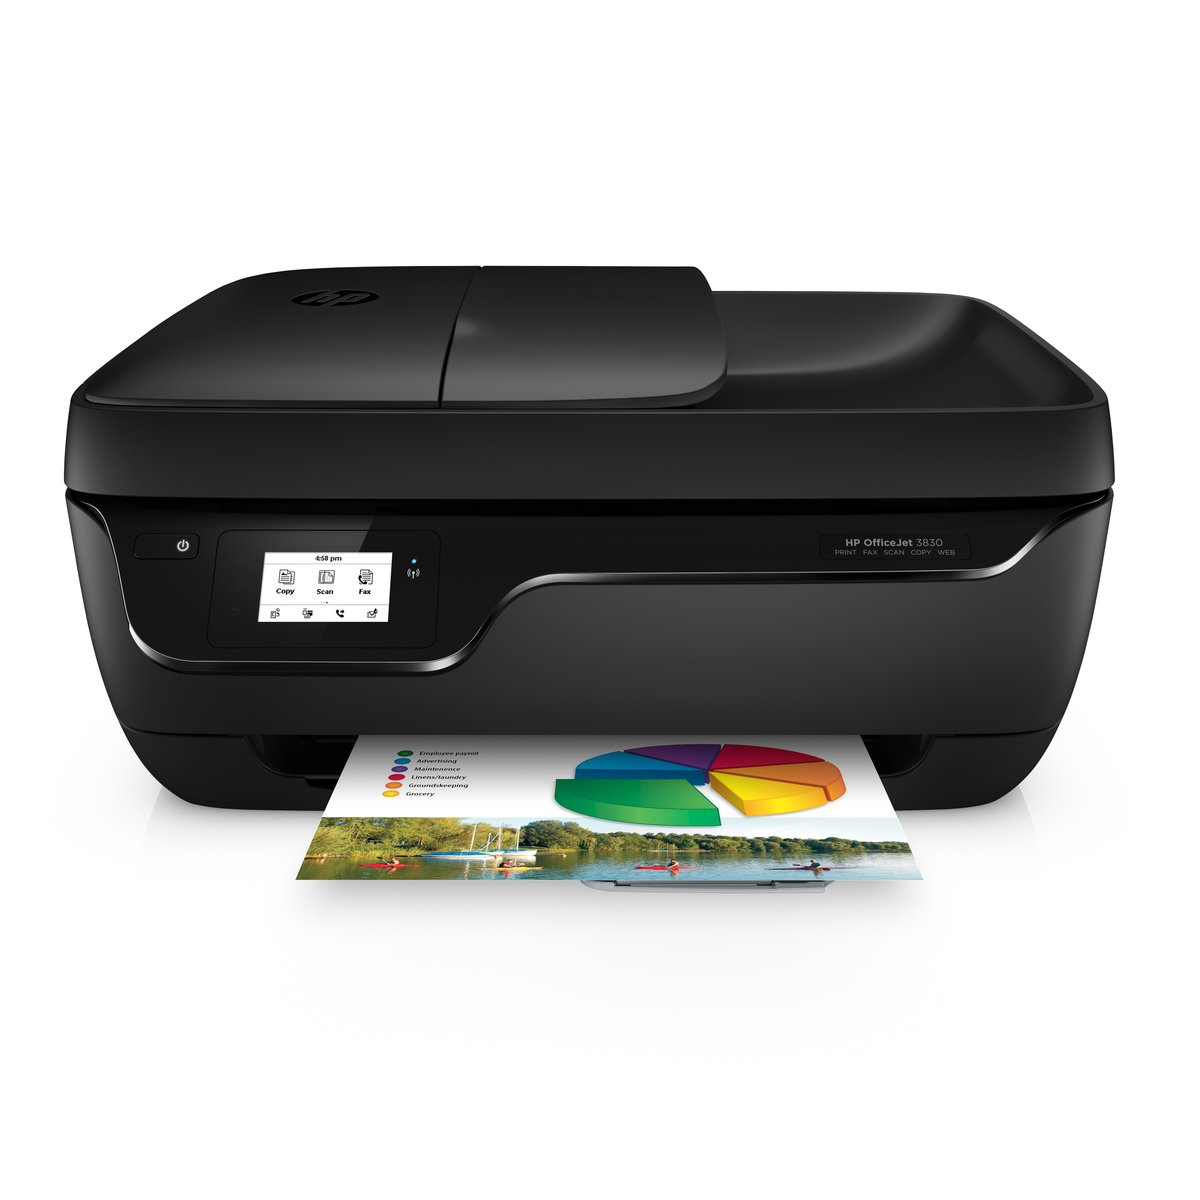 Color printing office depot - Hp Officejet 3830 Wireless Color Inkjet All In One Printer Scanner Copier And Fax By Office Depot Officemax